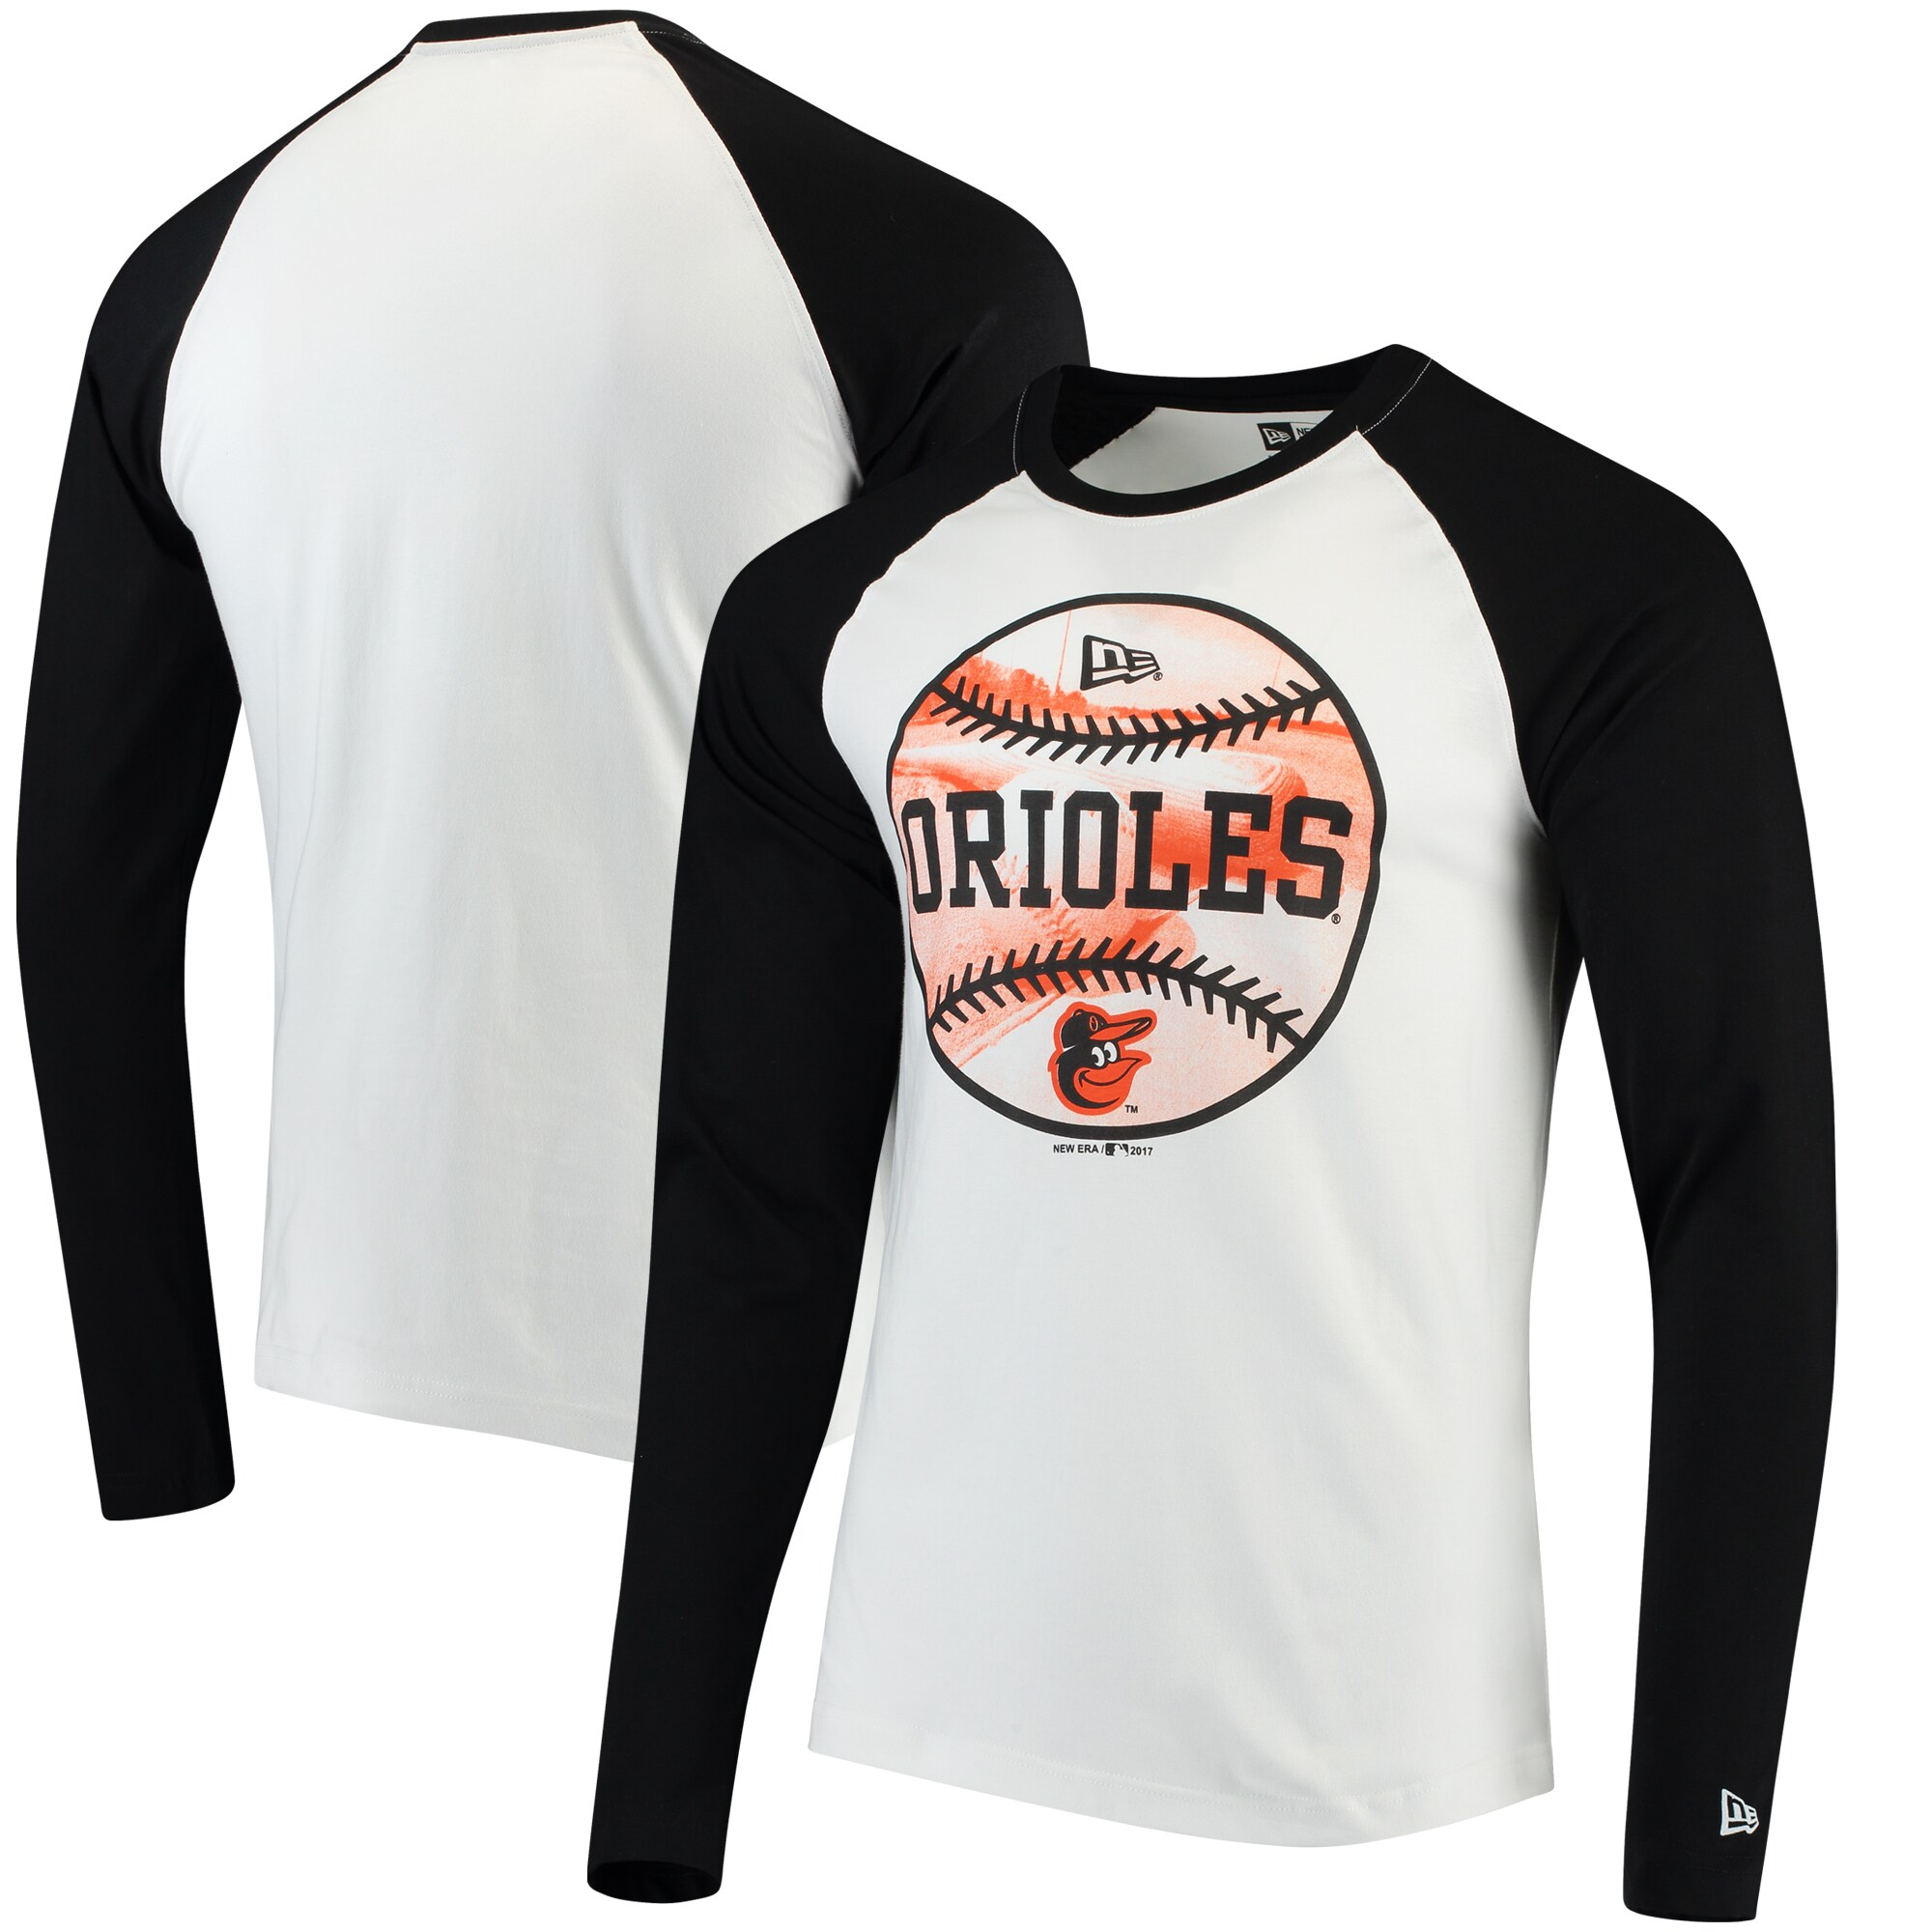 Baltimore Orioles New Era Raglan Long Sleeve T-Shirt - White/Black